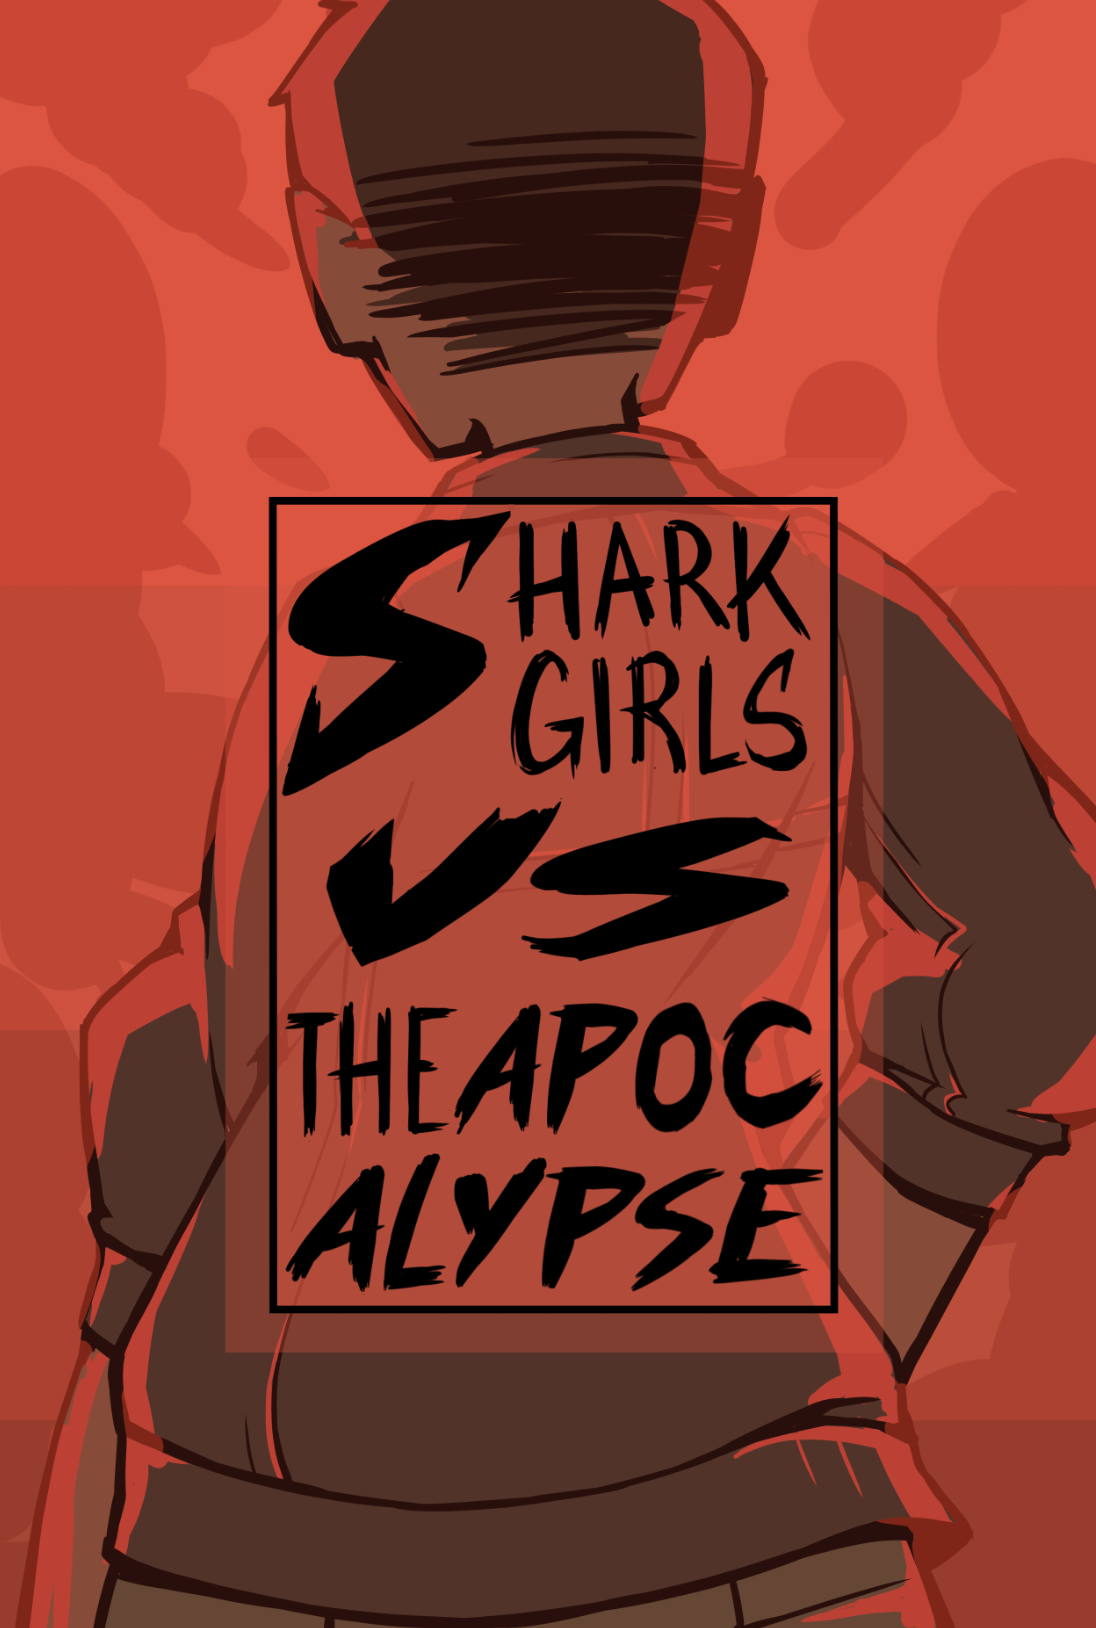 Sharkgirls VS. the Apocalypse (Comic)  A series of vignettes focusing on the everyday life of four high school delinquents in the year leading up to the apocalypse.  Loosely inspired by my experiences growing up in a small Southern town.